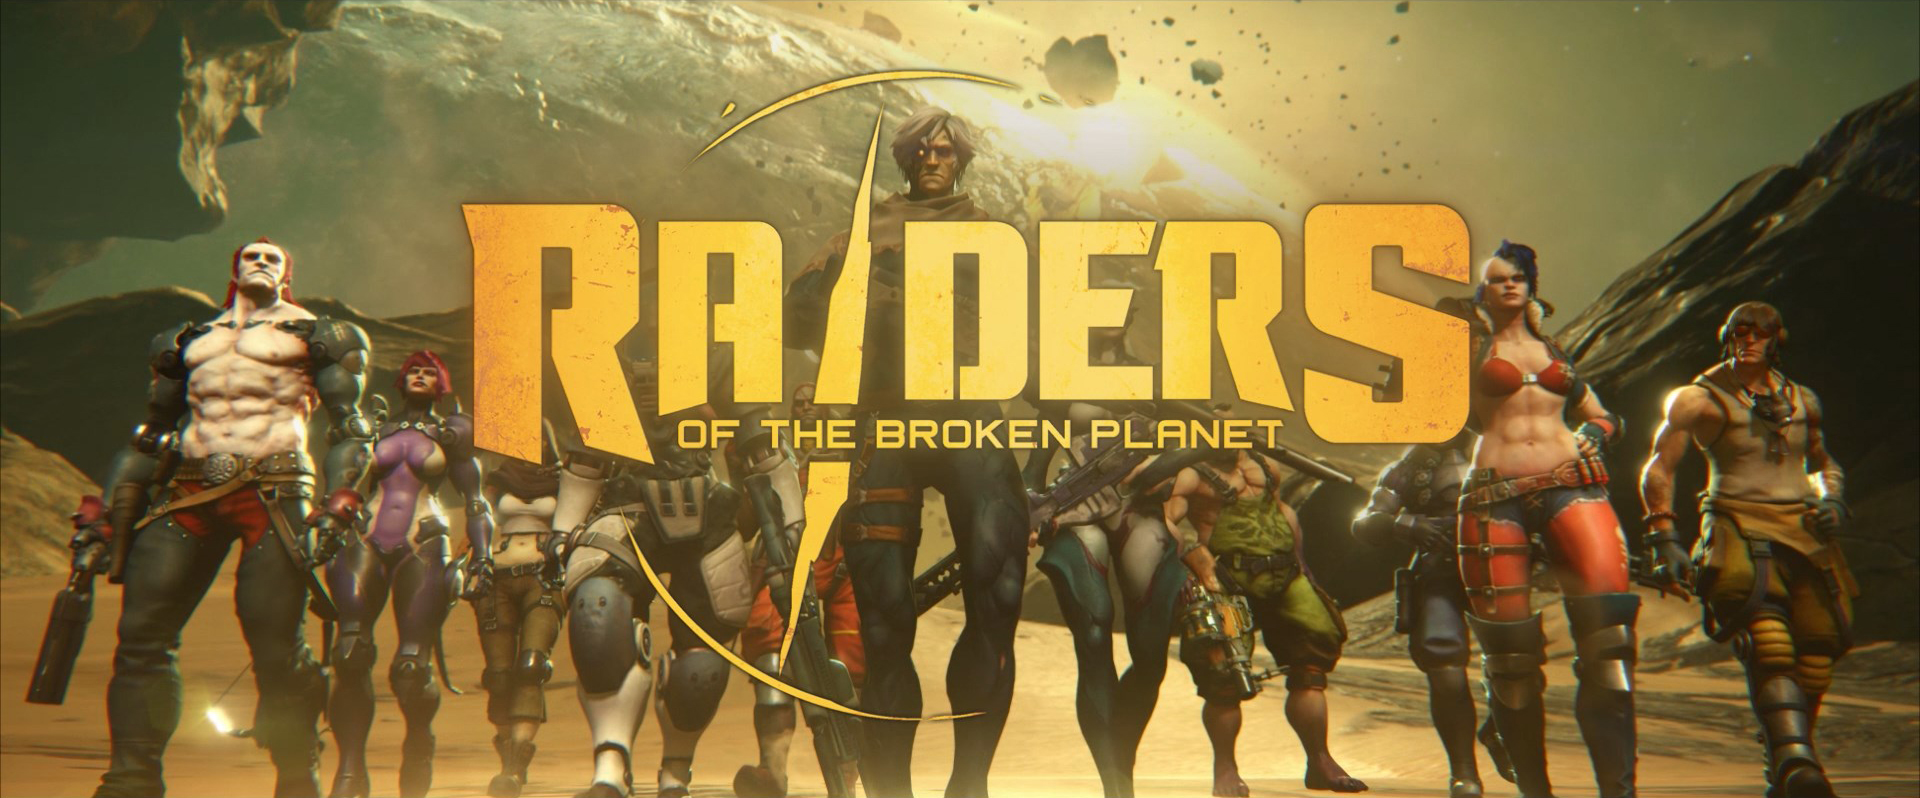 Game bắn súng Game Raiders of the Broken Planet tung trailer ấn tượng